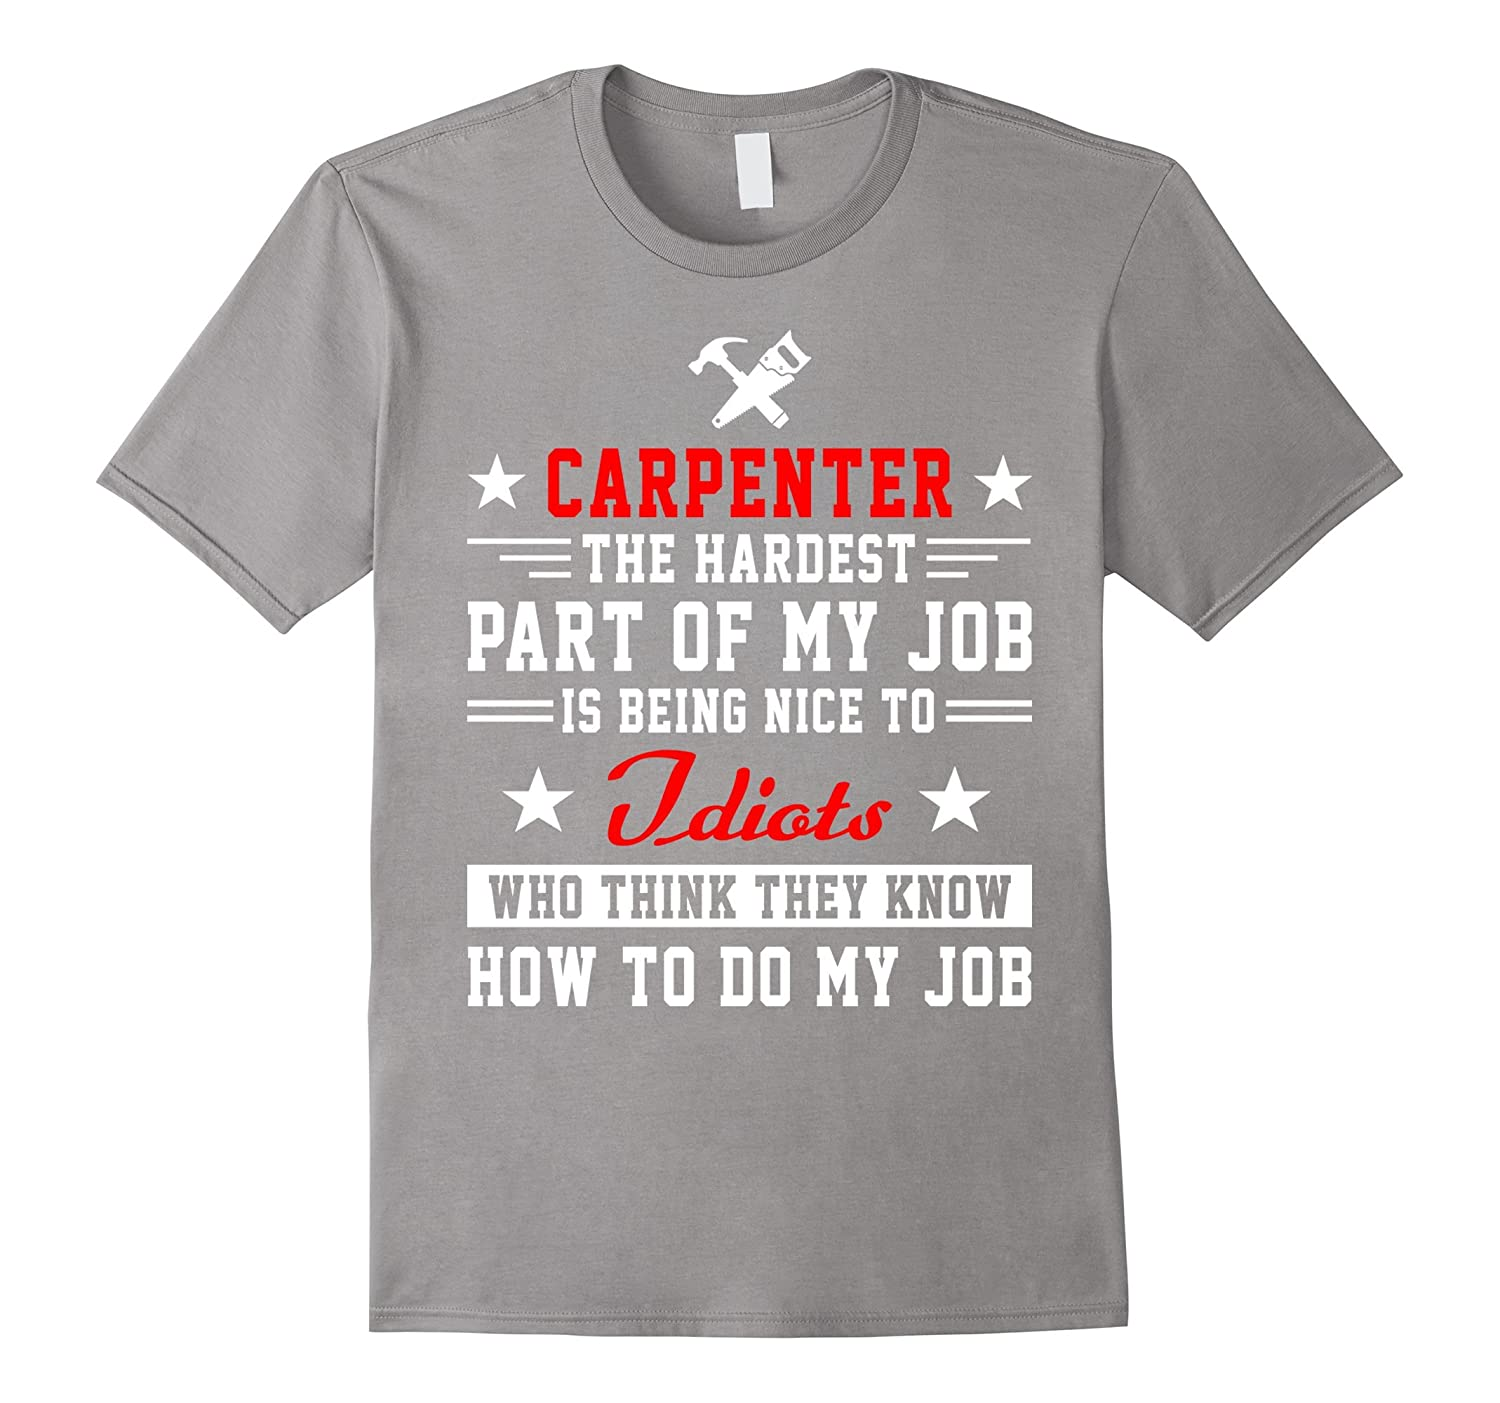 Carpenter Shirt - Hardest of My Job is Being Nice to People-TJ